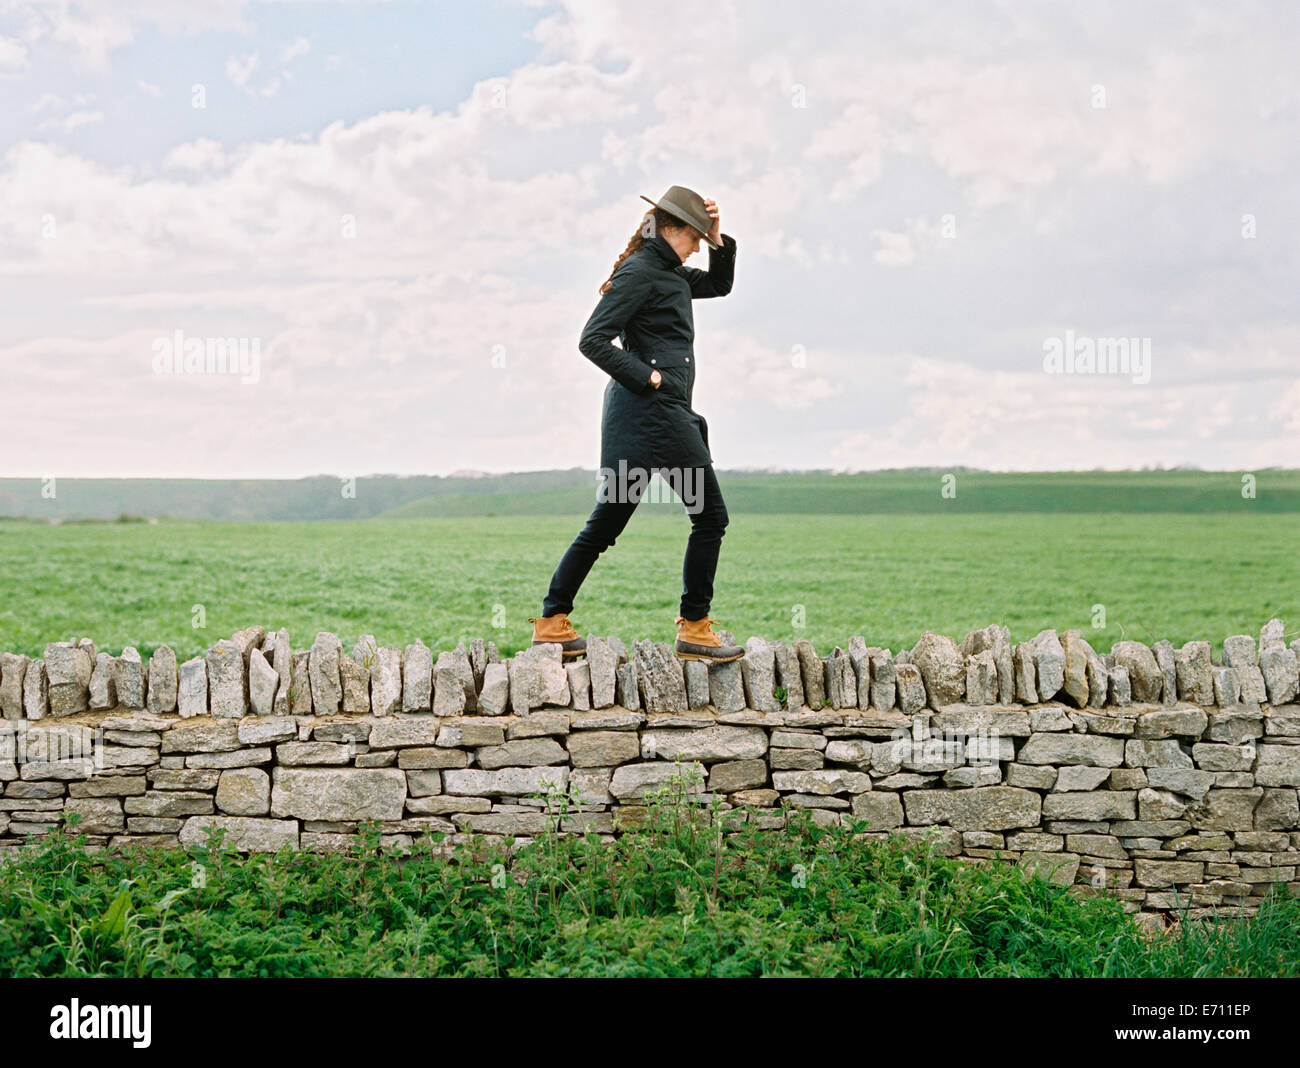 A woman in a hat walking along the top of a dry stone wall in a field. - Stock Image